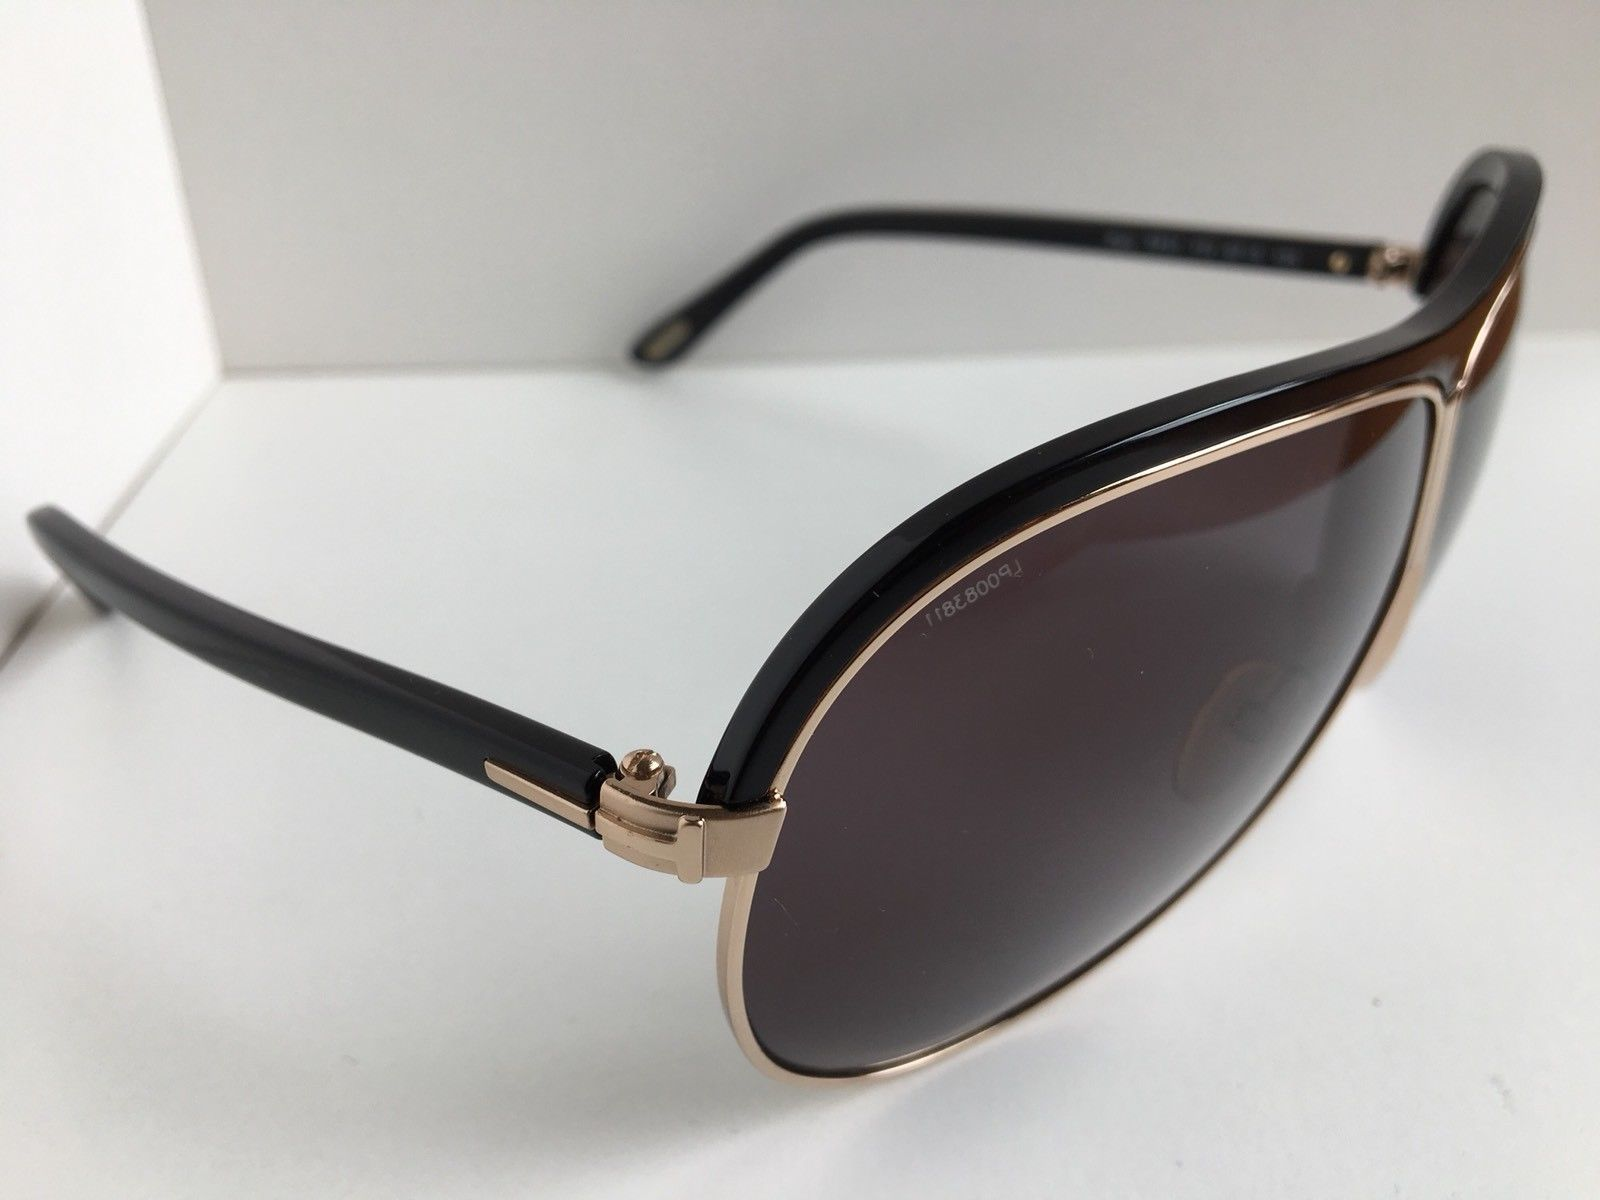 0b1ee0f3eb4 ... Tom Ford Rory TF 51 TF51 772 Black Gold 67mm Sunglasses Italy T1 ...